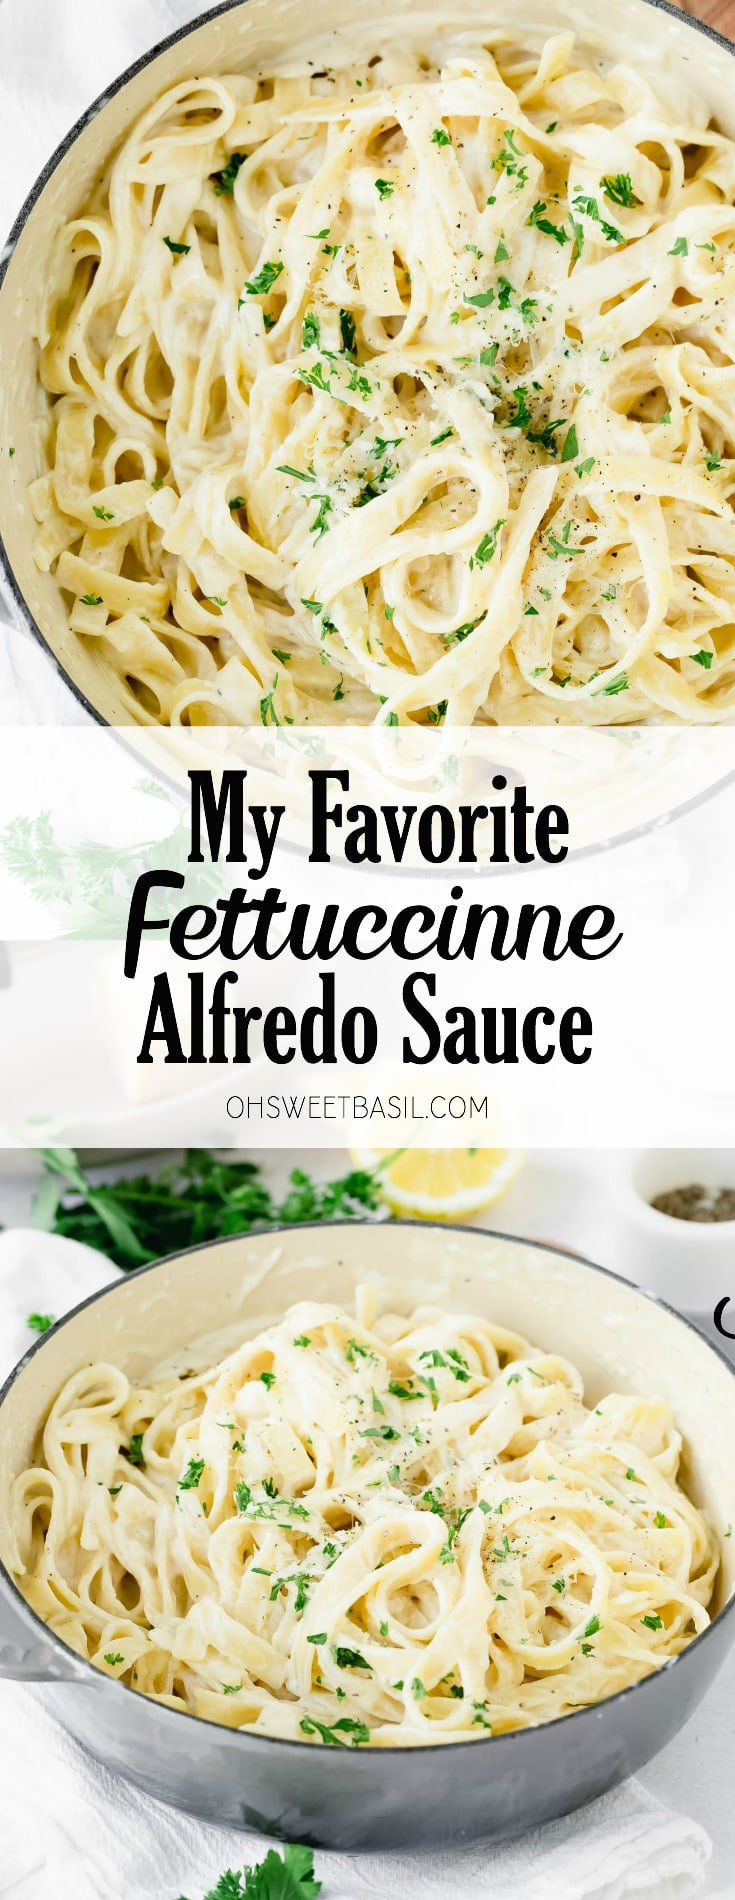 A bowl of fettuccine alfredo. It is sprinkled with parsley and there is fresh parsley and lemon wedges next to the bowl of fettuccine alfredo.